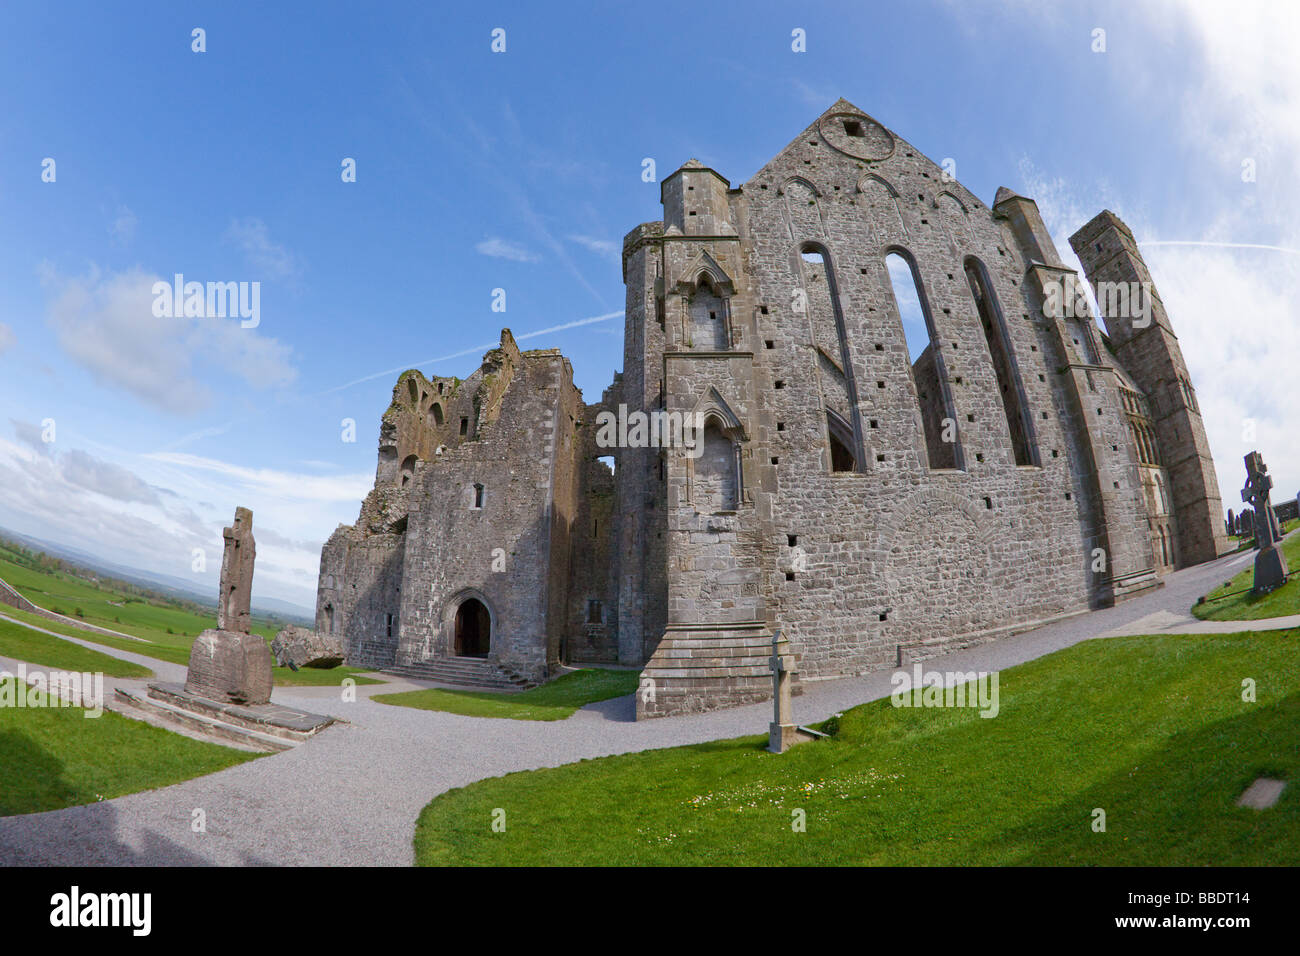 Rock of Cashel County Co Tipperary Ireland Eire Irish Republic Europe - Stock Image